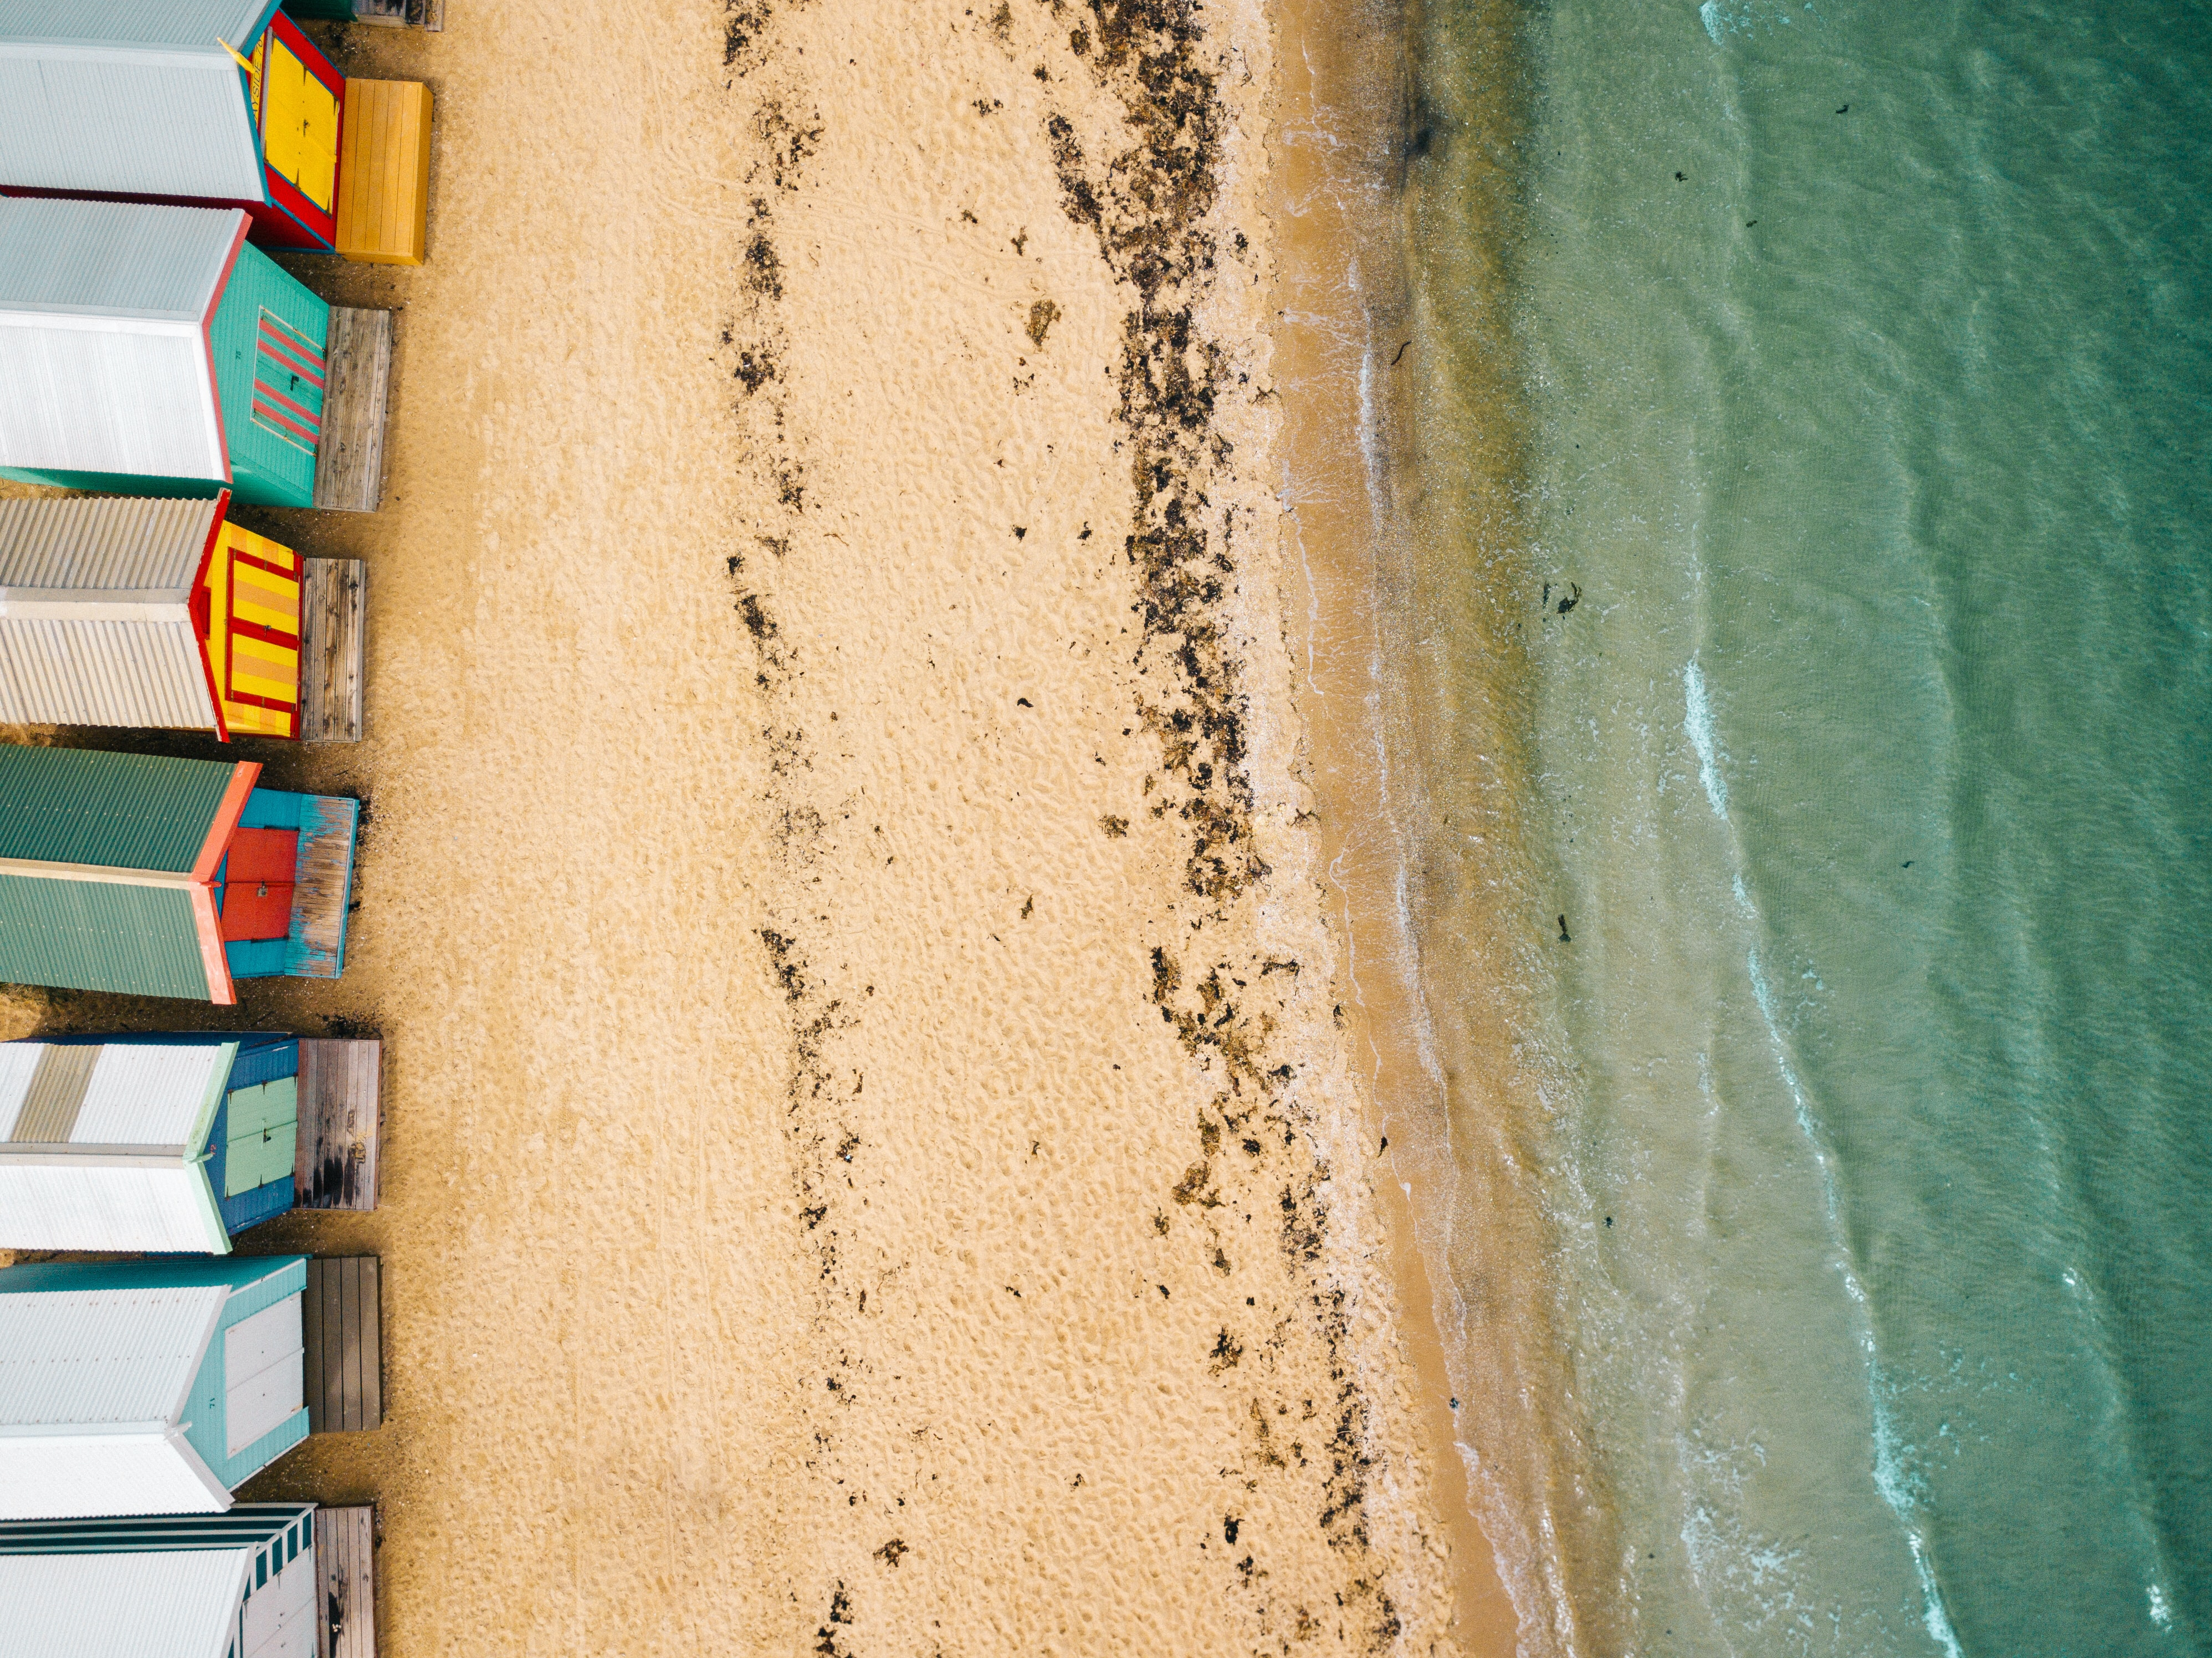 Looking down on Brighton Beach and colourful bathing boxes from above